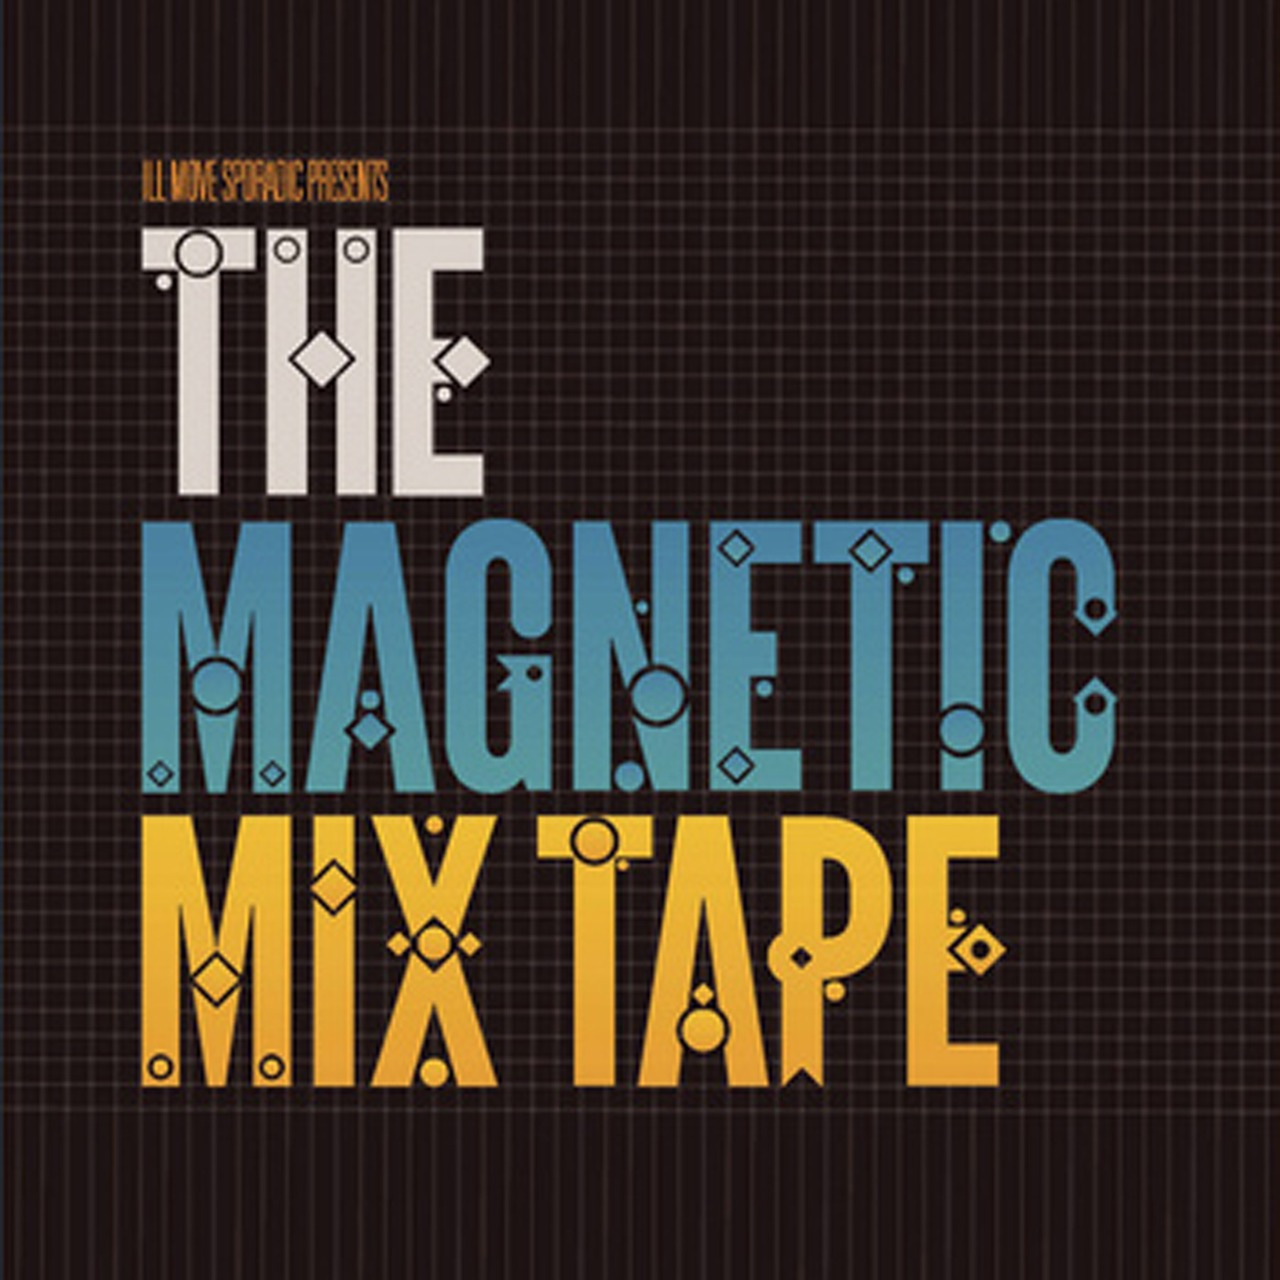 Had this sitting in the HC inbox the other day! - Love it when good music drops in our lap.   Ill Move Sporadic  present  The Magnetic Mixtape.    From the IMS official bandcamp page:     Ill Move Sporadic presents - The Magnetic Mixtape.      The Magnetic Mixtape only features tracks produced, written, mixed and mastered this year by the sensational beat group - Ill Move Sporadic (Nil Cage and Ben 81)     Created in their South London Acre Studio The Magnetic Mixtape is a showcase of several projects Ill Move have on the boil. It is an introduction and a taster of things to come from I.M.S and their fantastic MC roster: Oliver Sudden the Cronx Don, Joey Menza, Ddubble, SKD and Baska of the 2 Man Army and Lyon France based MC Katha.     This tape is the highlights of the past 12 months spent in the studio recording, mixing, writing and compressing tracks for your ears and minds, a trip from South London Acre Studios via the unearthed tape loops of a now defunct sound department of a 1960s television station. The Magnetic Mixtape also comes with a health warning as it is the only Mix tape this year to feature the voice of Sir Jimmy Saville.     Thank you to a neighbour and jazz enthusiast that left, in his will, a vast and incredible record collection to the Ill Move duo. This vast collection was plundered and deployed for many of the productions featured on the Magnetic Mixtape . Also many thanks goes to Aiden owner of a certain South London record emporium. Aiden occasionally supplied I.M.S kru with electricity at a charge of 1 English pound for their portable turntables.     So now you know, go get your little something for the weekend here:    http://illmovesporadic.bandcamp.com/album/the-magnetic-mixtape